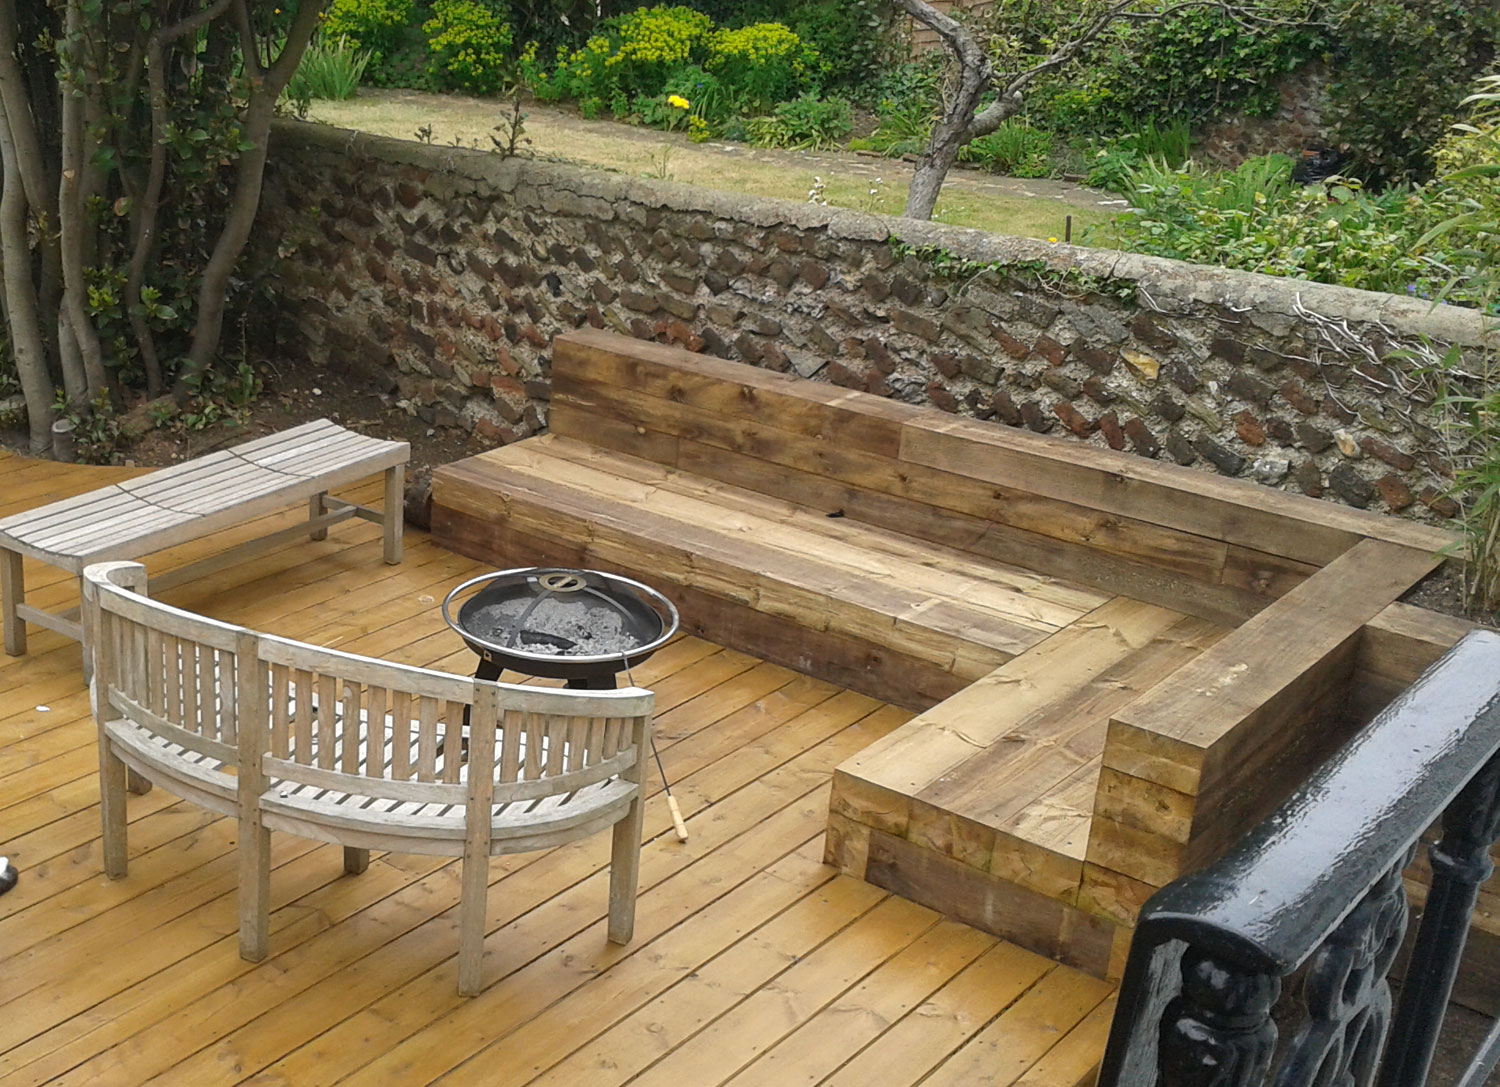 Gardens Garden Buildings Furniture Benches Decking Bbq Barbecues Brighton Hove And